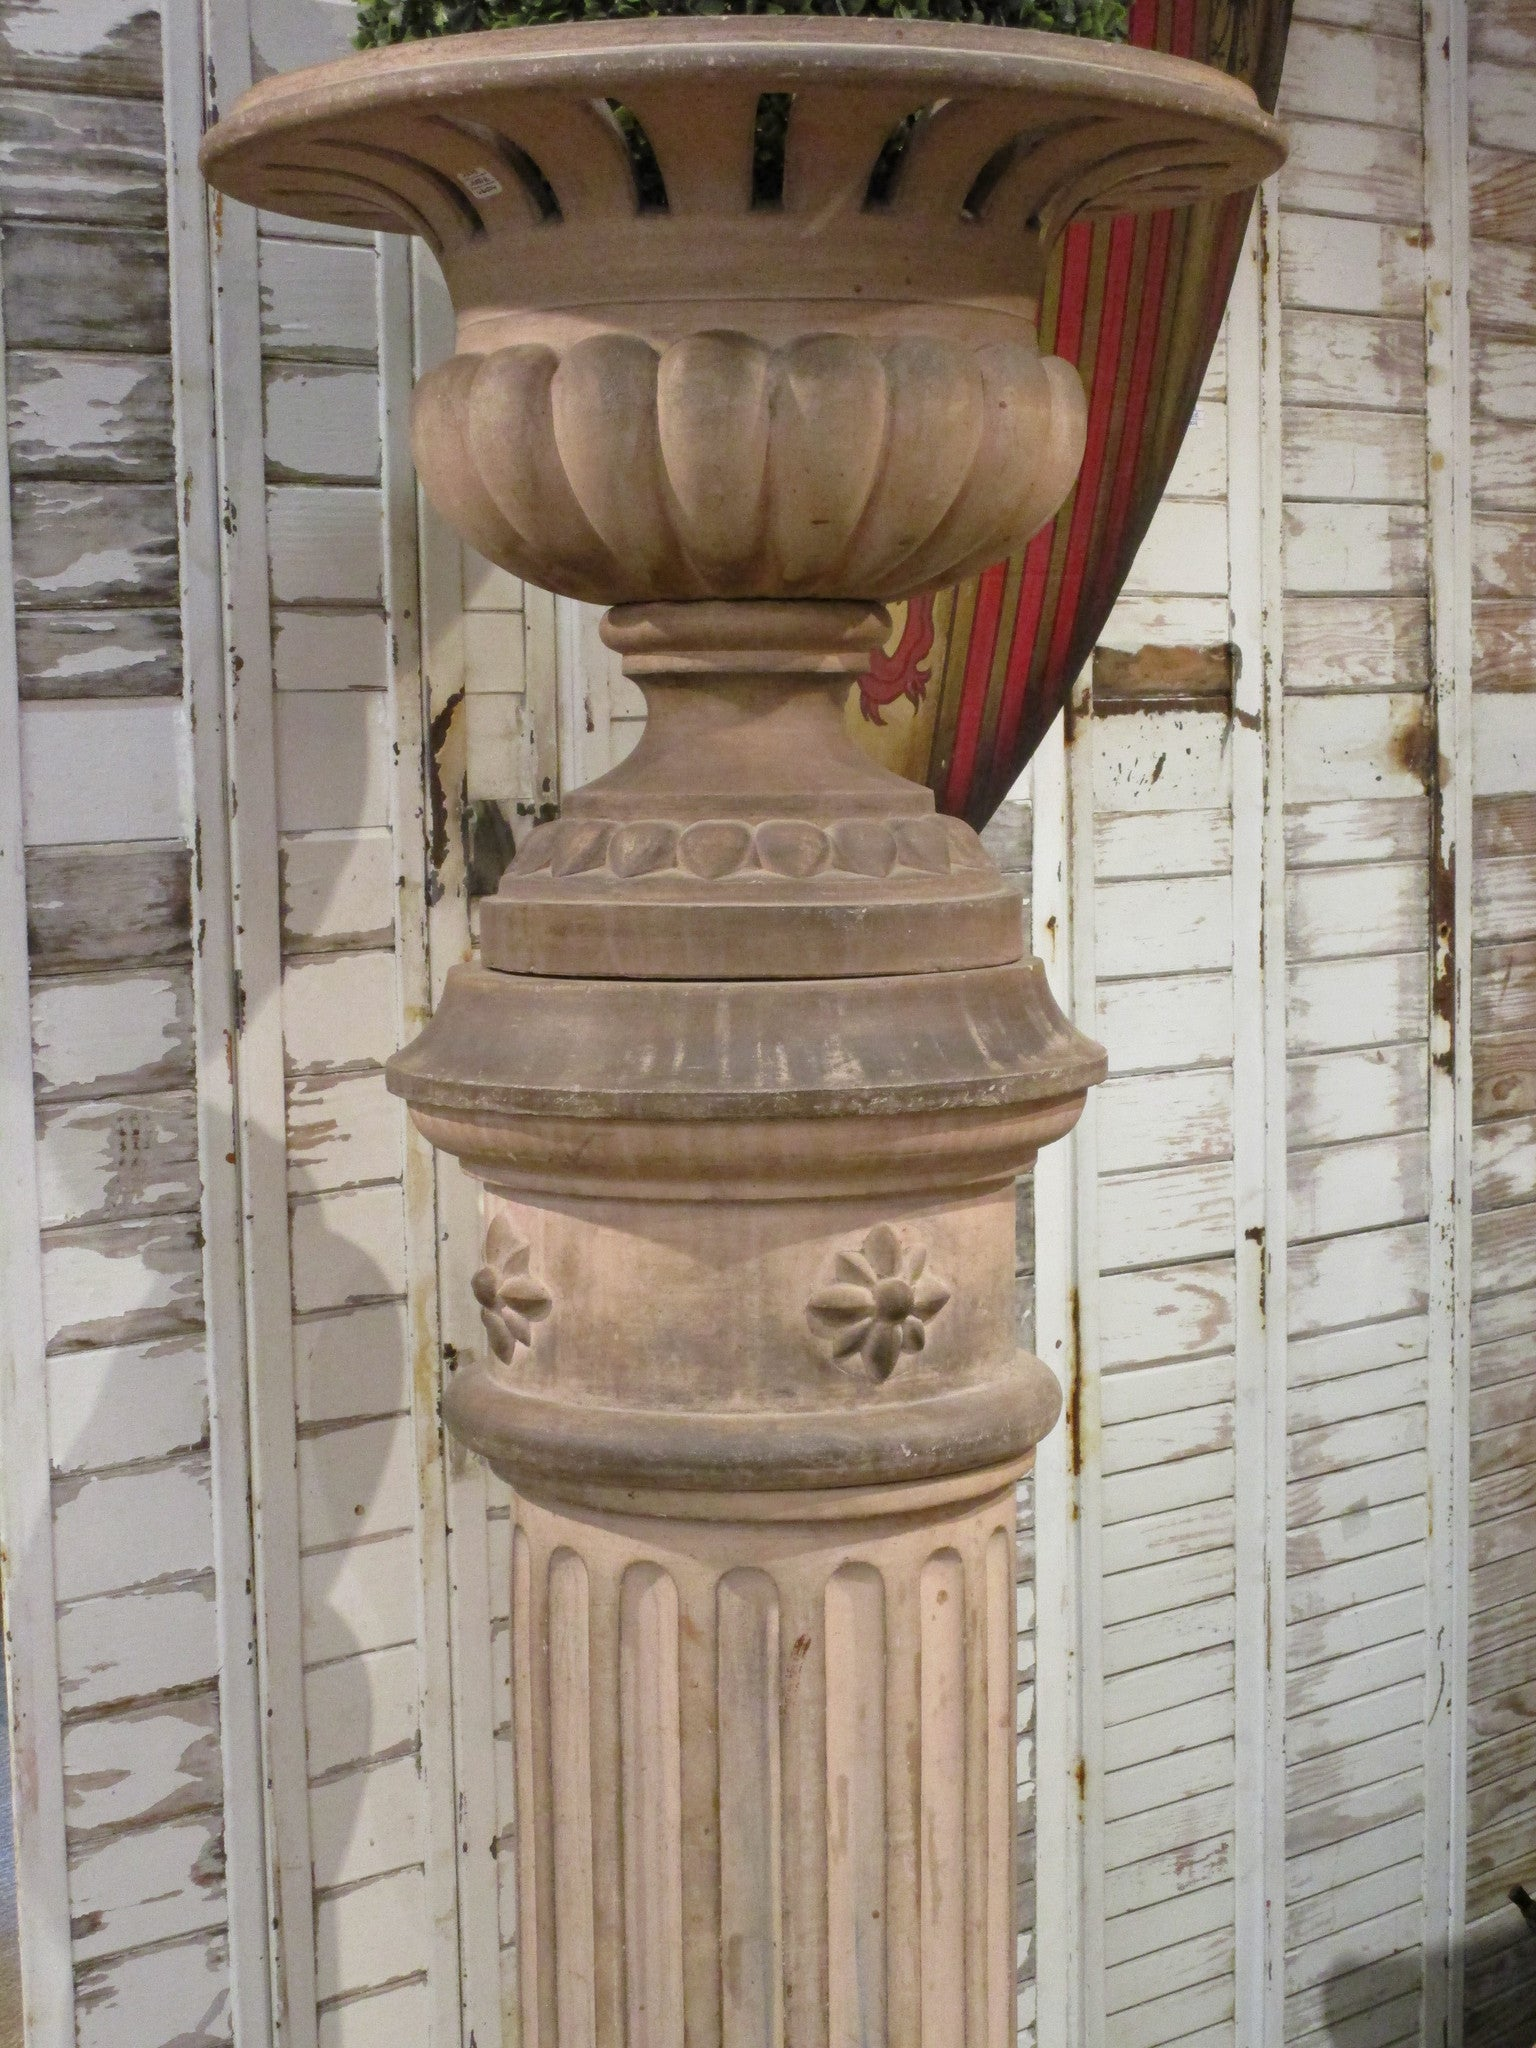 19th century terracotta Medici urn on column